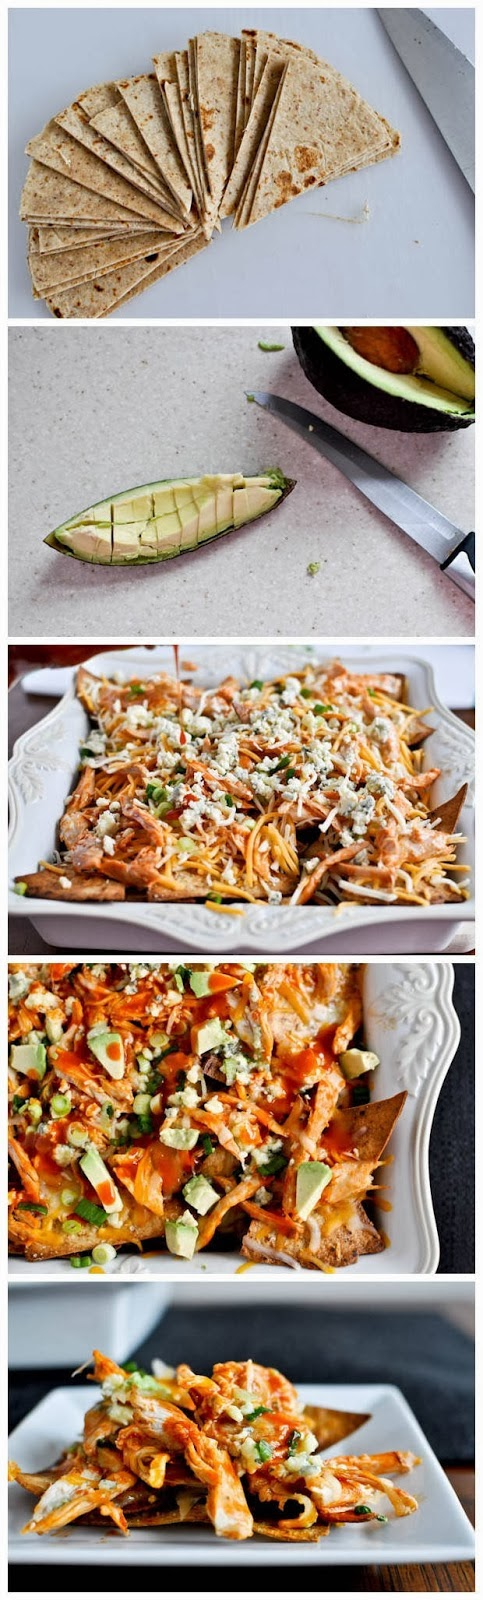 Baked-Layered-Buffalo-Chicken-Nachos-Recipe